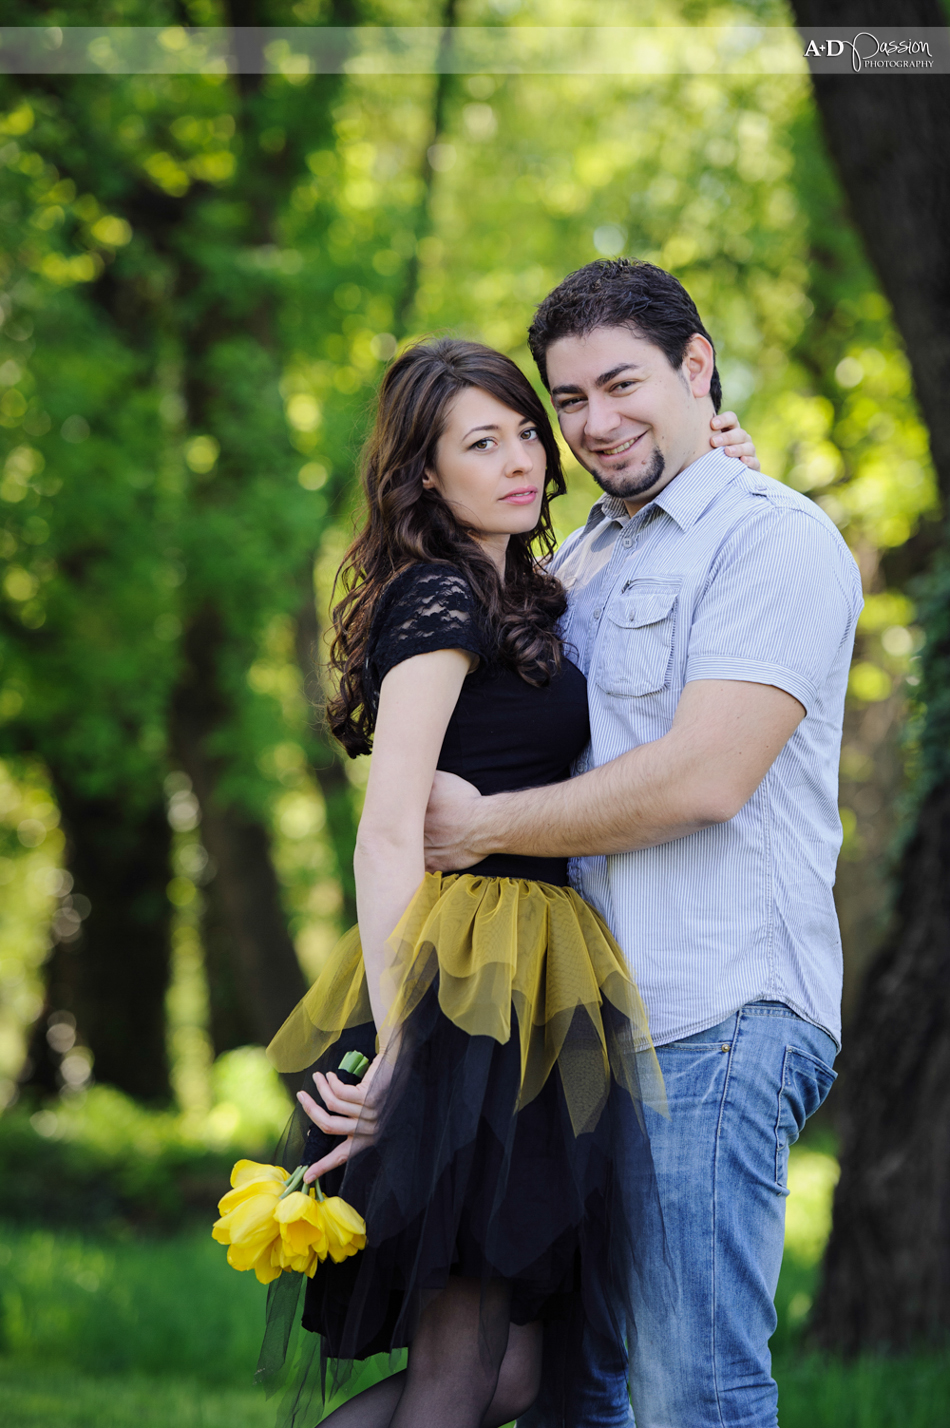 AD Passion Photography | 20130501Fotograf-Profesionist_Sesiune-foto-cuplu_Reiny-si-Lori_0015 | Adelin, Dida, fotograf profesionist, fotograf de nunta, fotografie de nunta, fotograf Timisoara, fotograf Craiova, fotograf Bucuresti, fotograf Arad, nunta Timisoara, nunta Arad, nunta Bucuresti, nunta Craiova